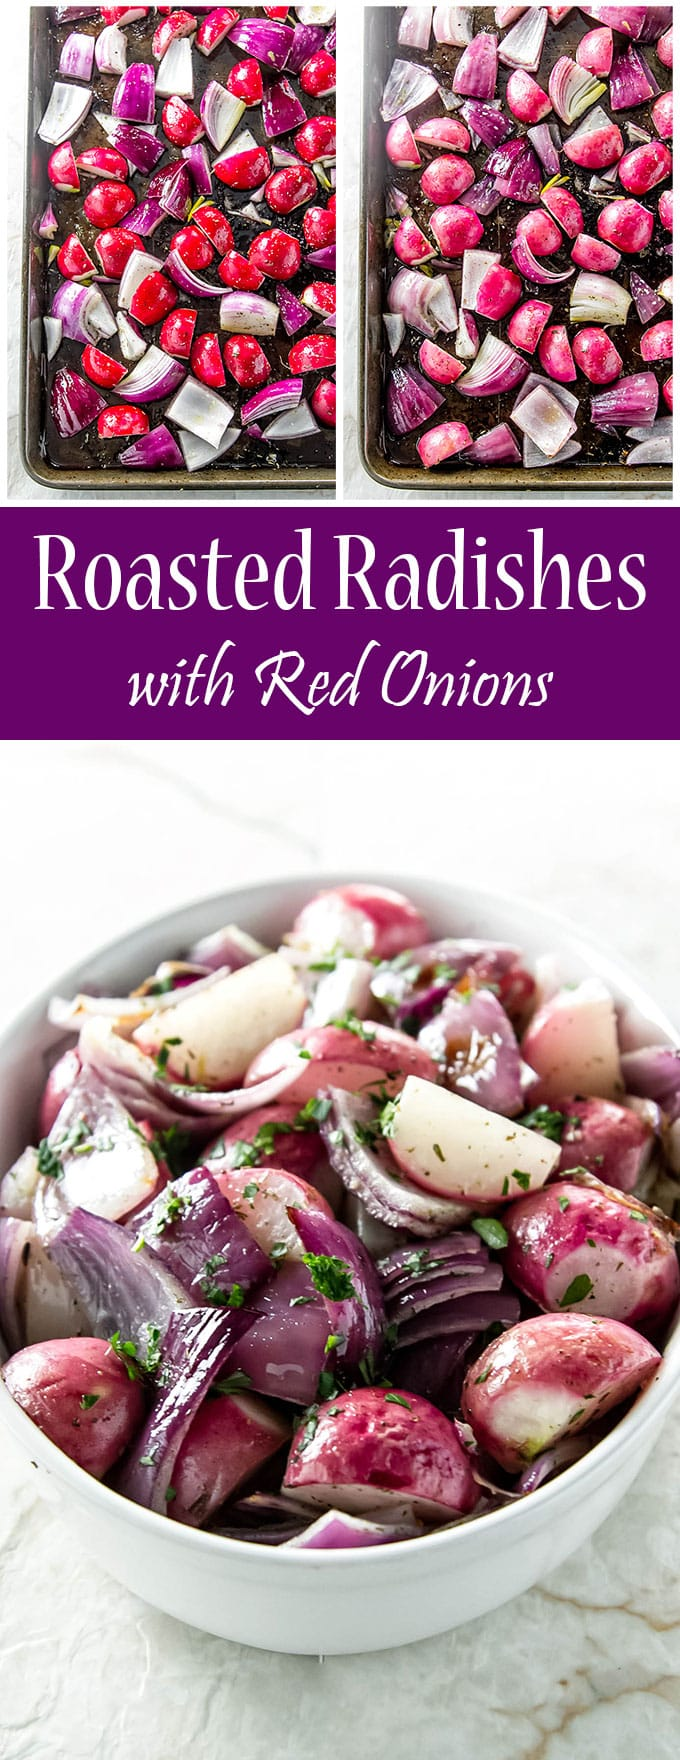 Roasted Radishes with Red Onions | Girl Gone Gourmet